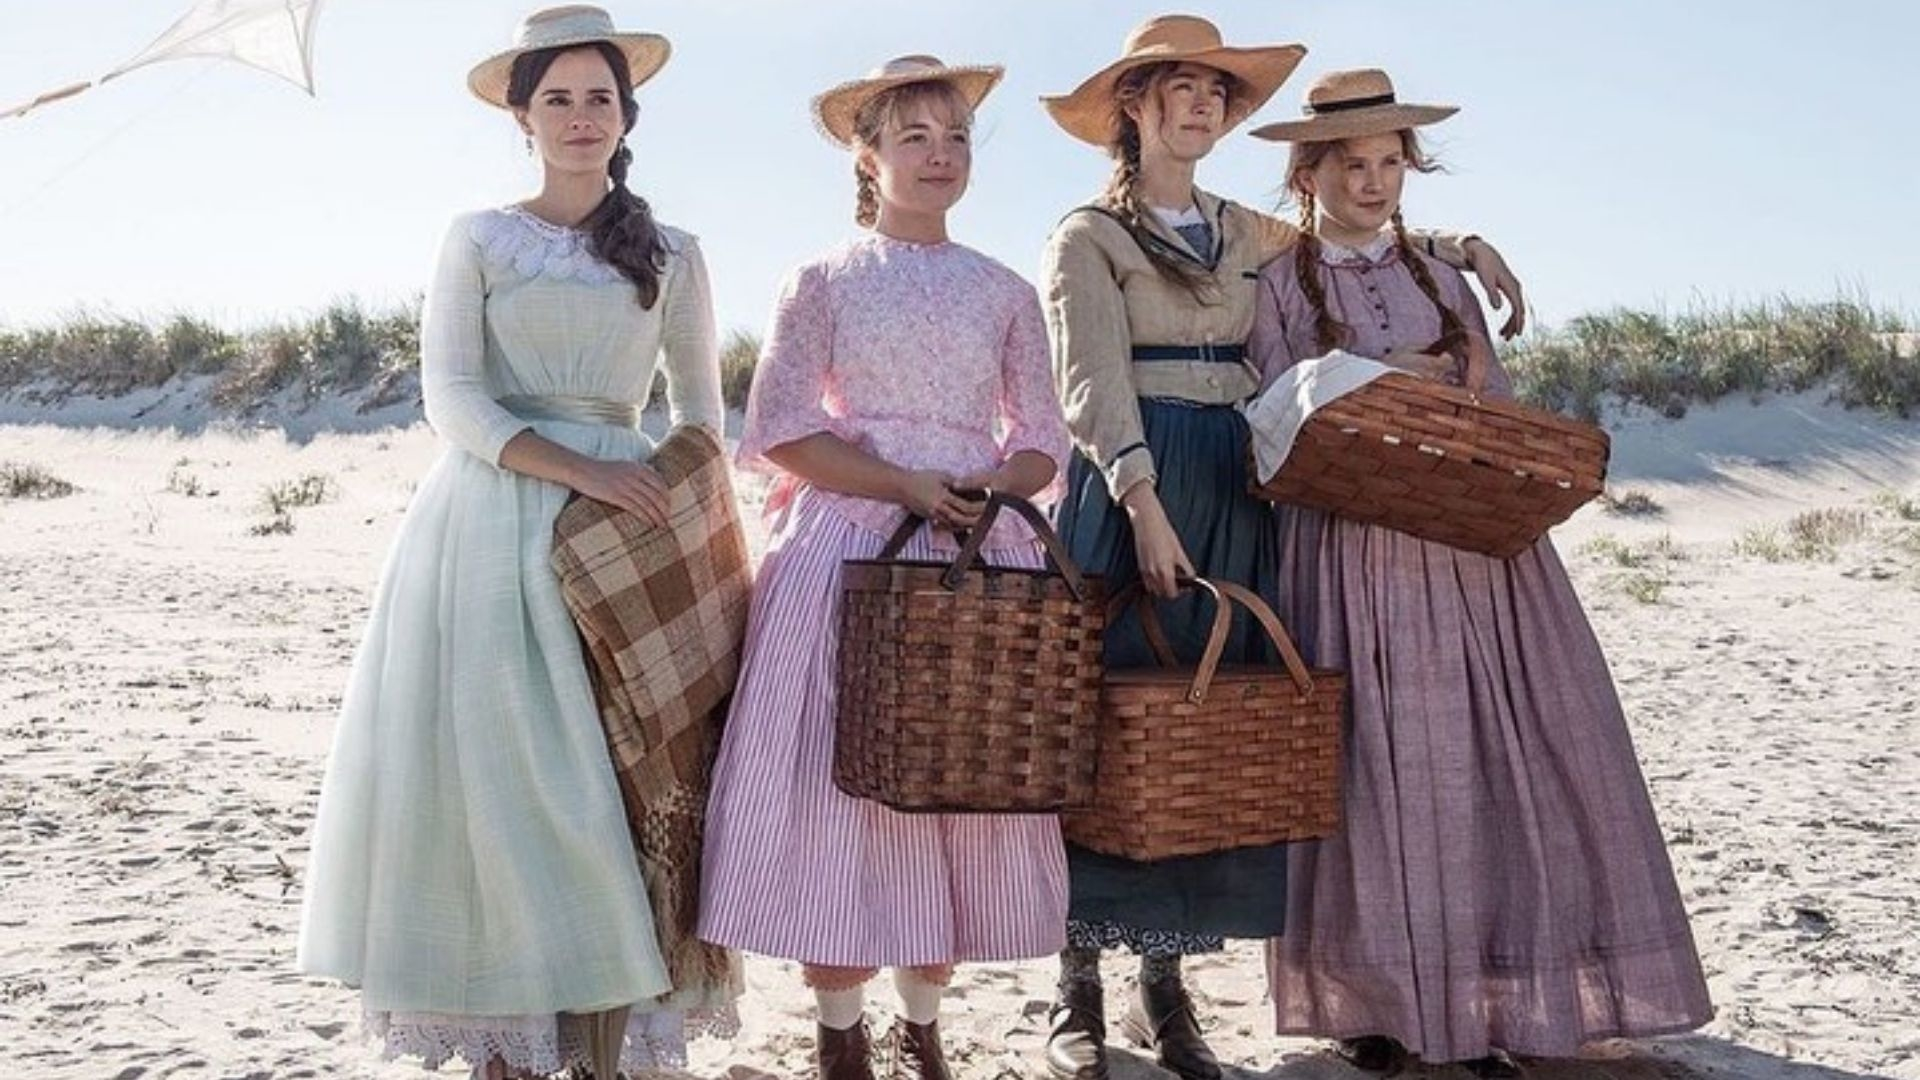 The Little Women Trailer, Starring Emma Watson And Saoirse Ronan, Has Finally Arrived